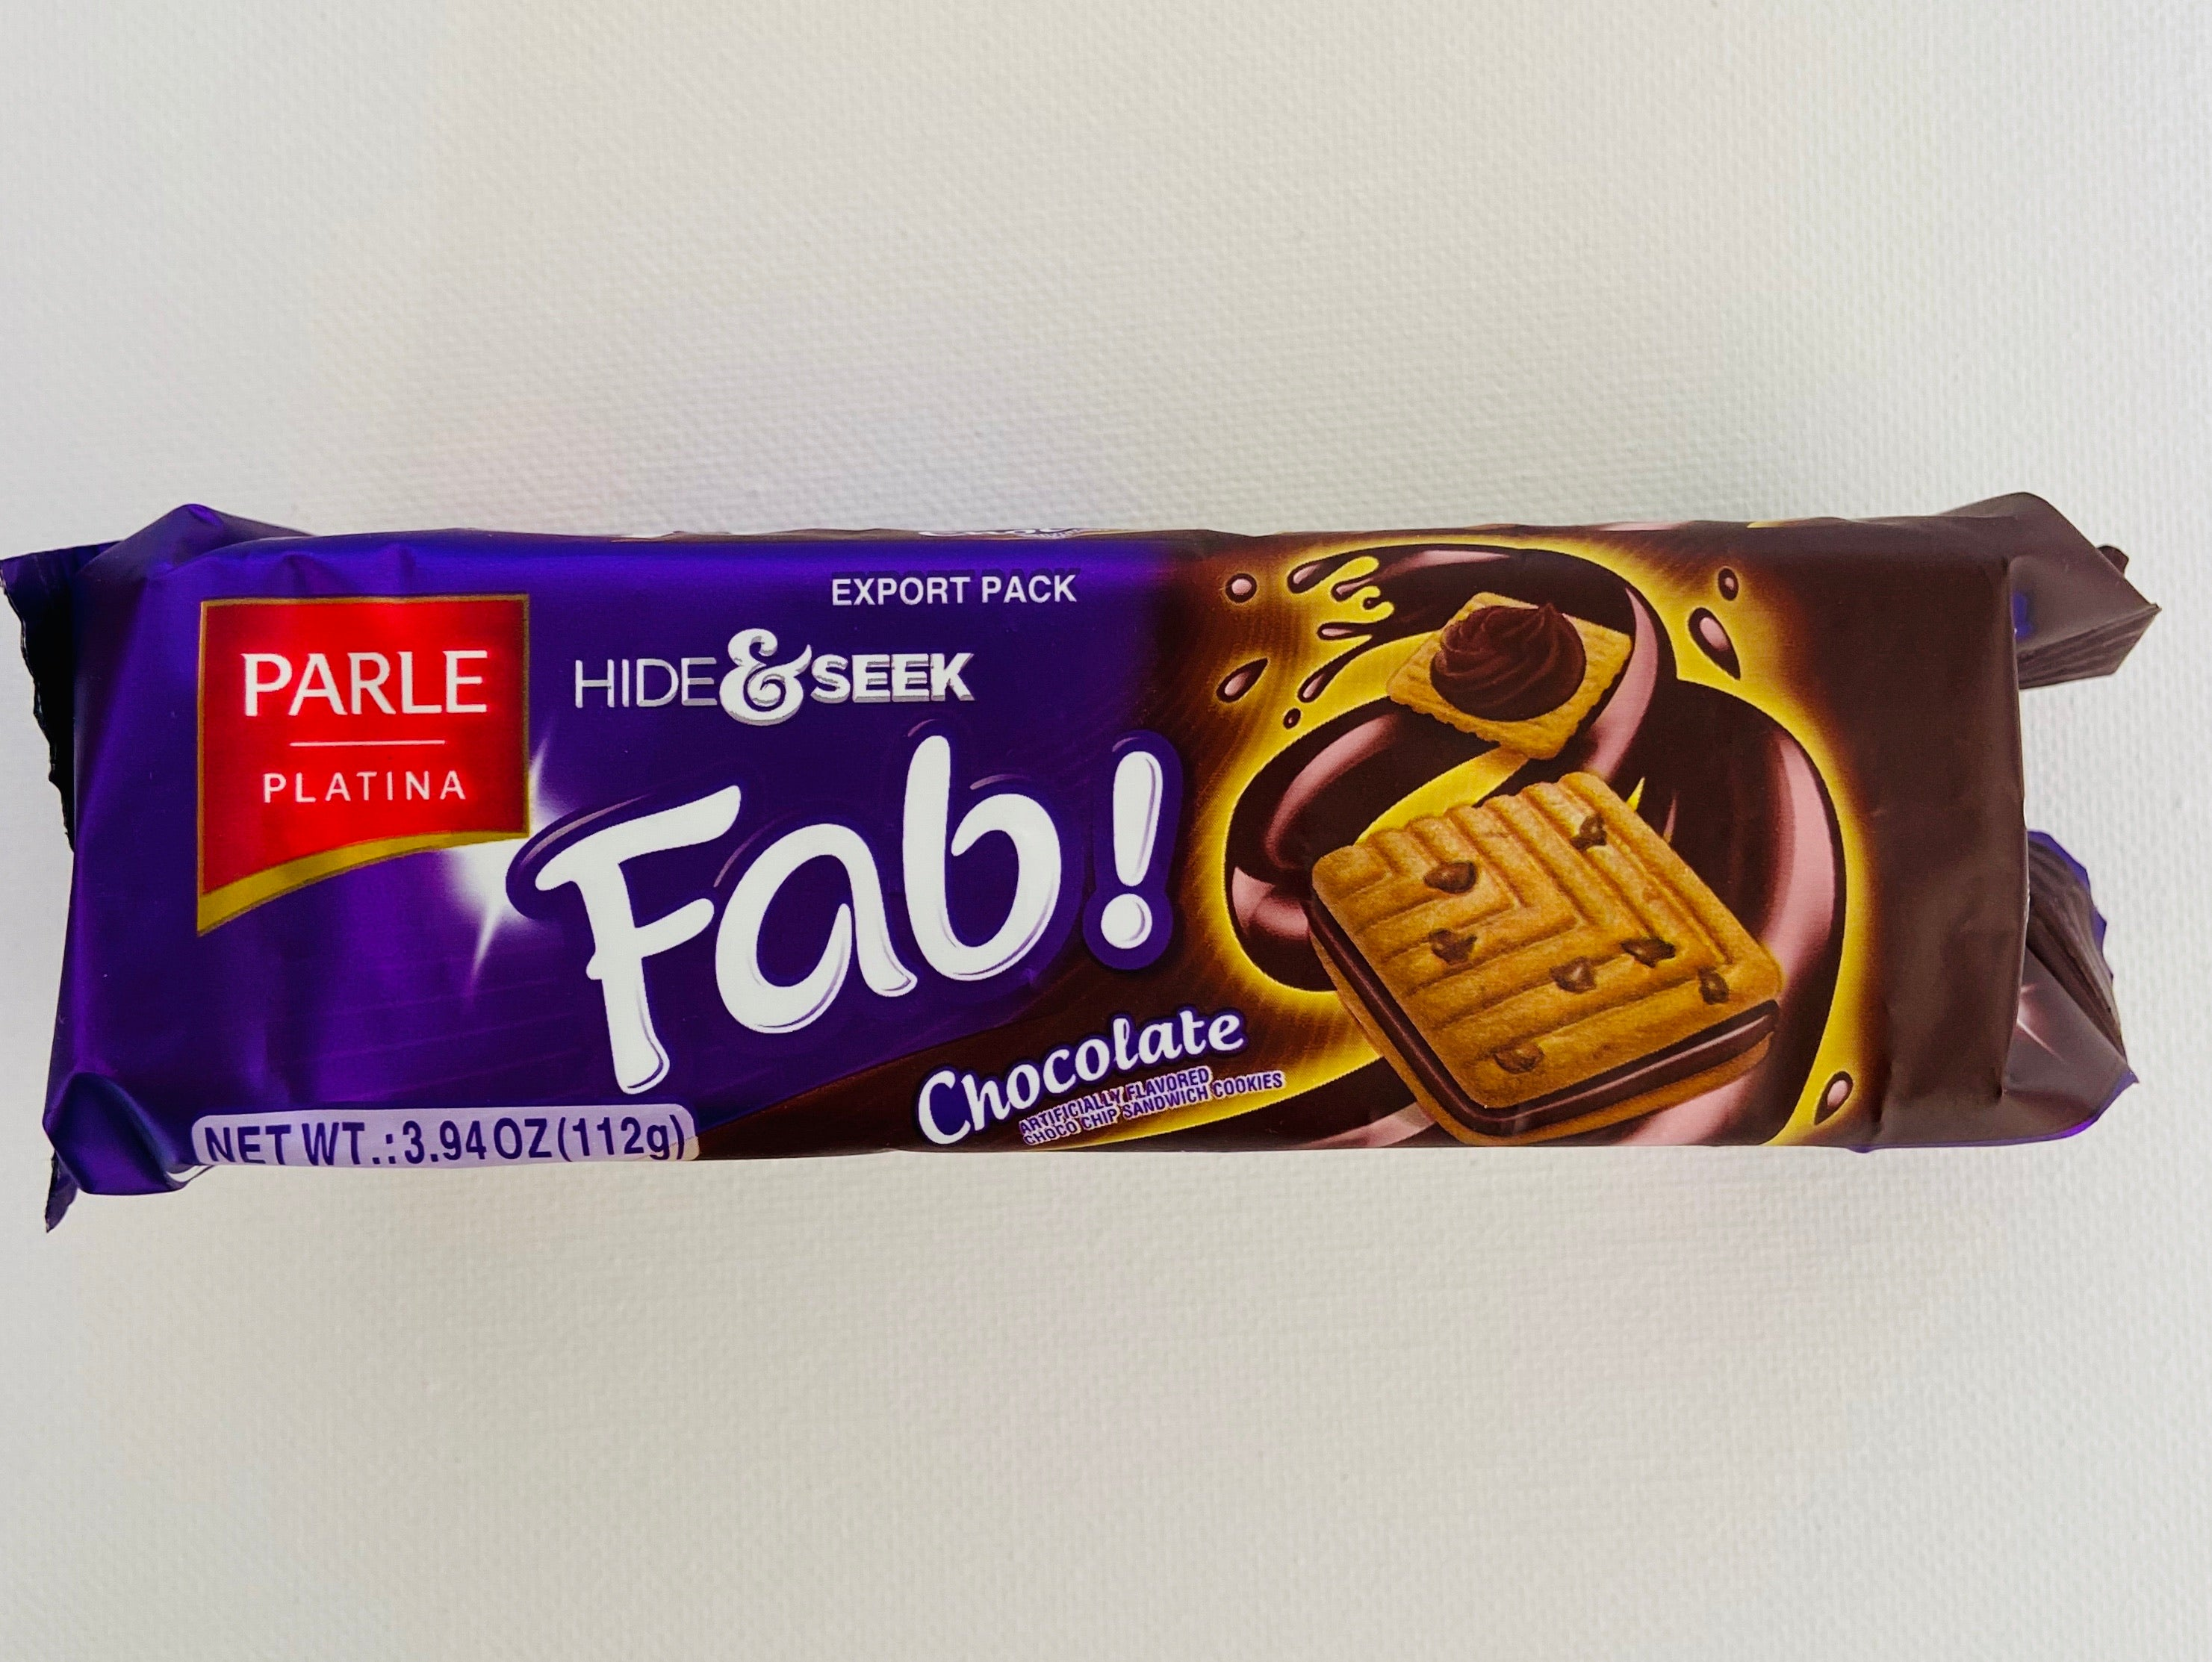 Parle Hide & Seek Fab! (Chocolate)